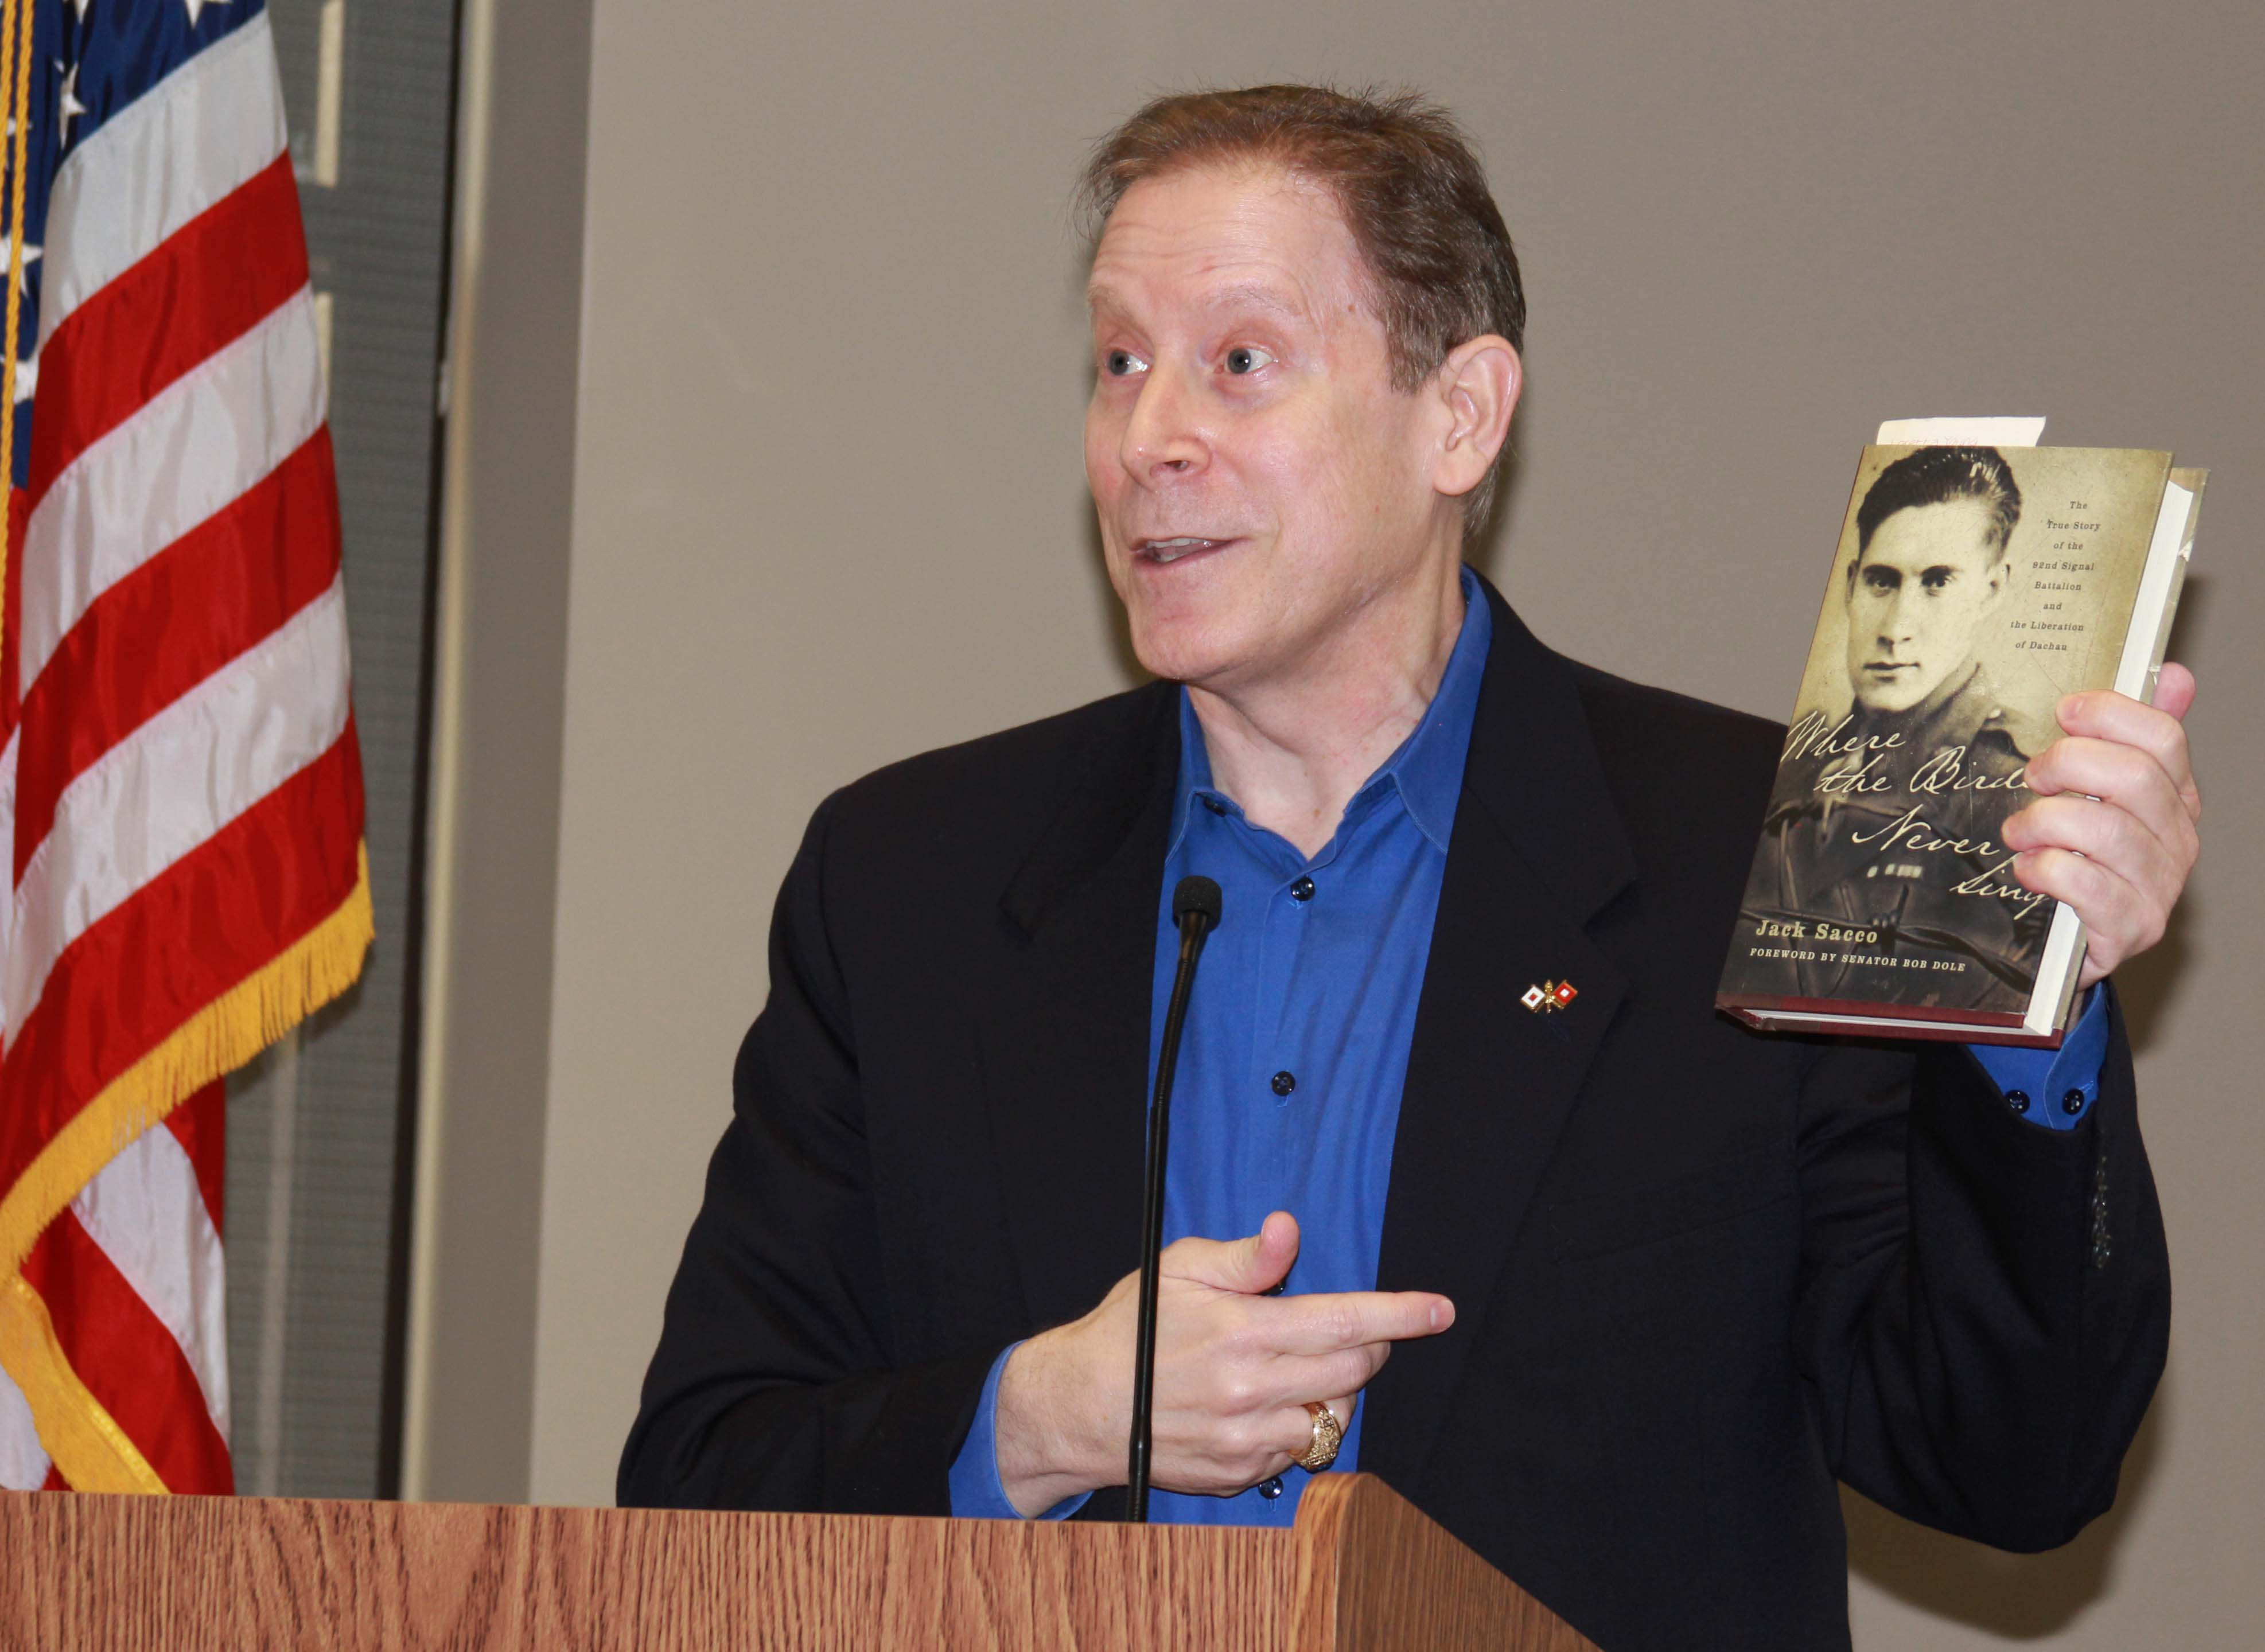 Author entertains Chamber of Commerce with tales of his father's war, the writer's friendship with O.J. Simpson